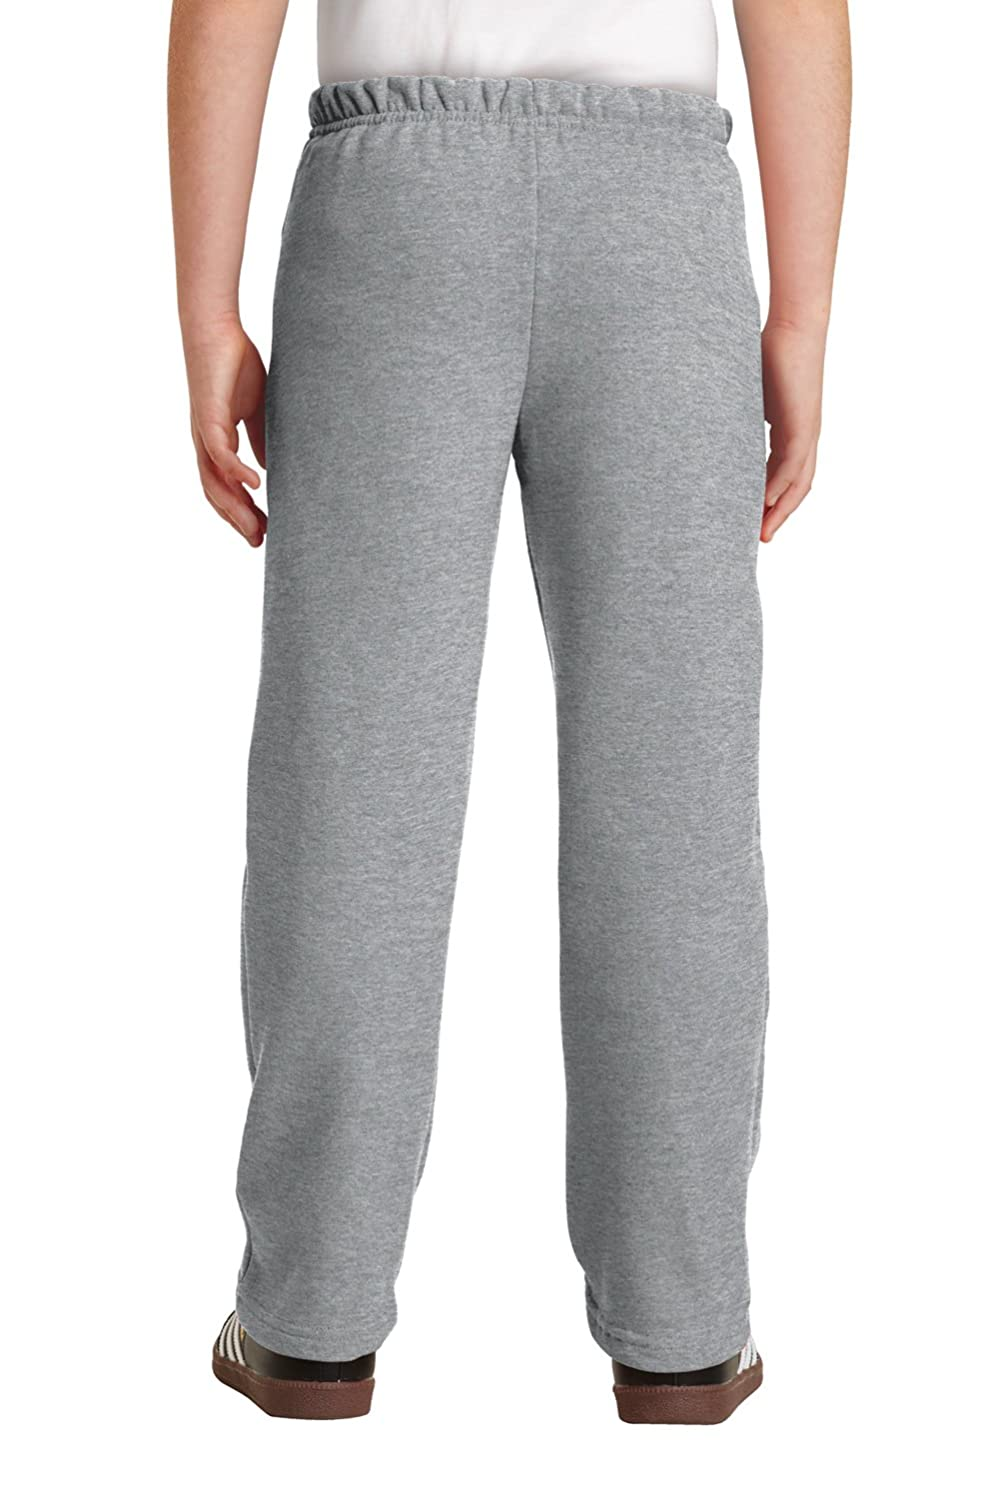 Gravity Threads Youth Size Open Bottom Sweatpants